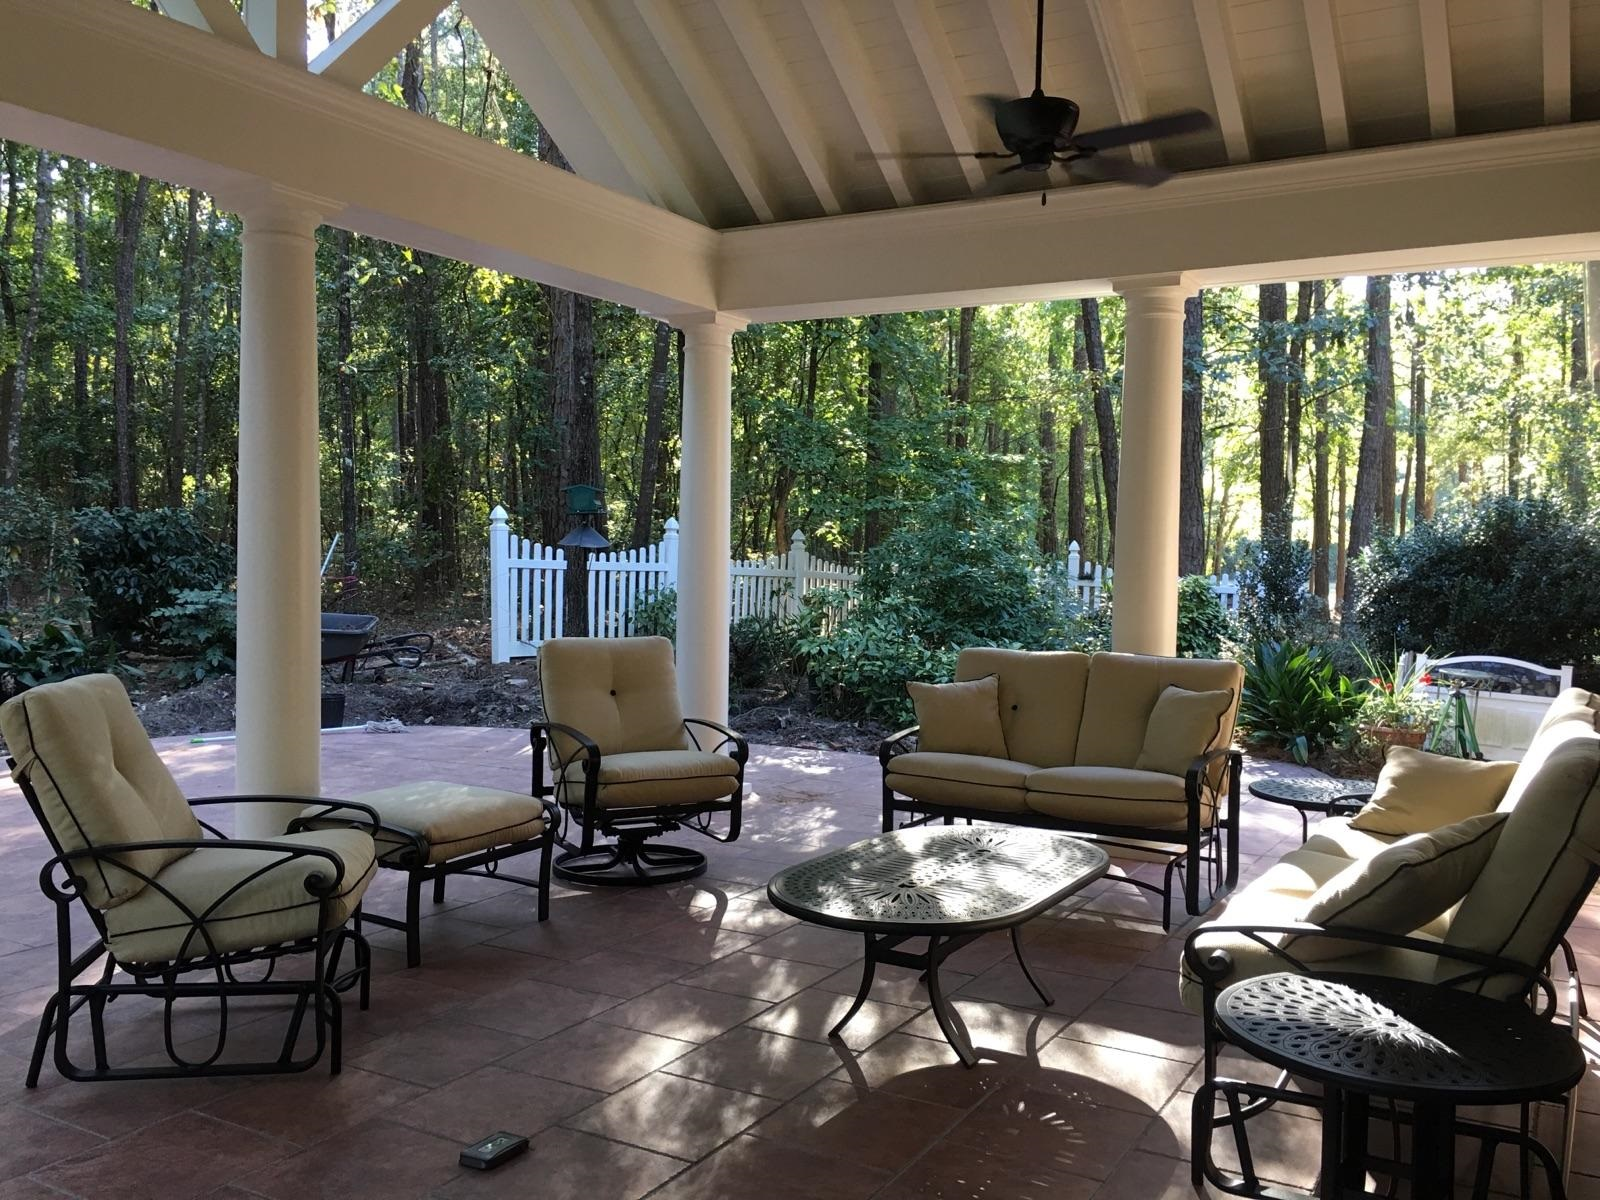 This-Elgin-covered-porch-is-the-perfect-size-for-outdoor-relaxation